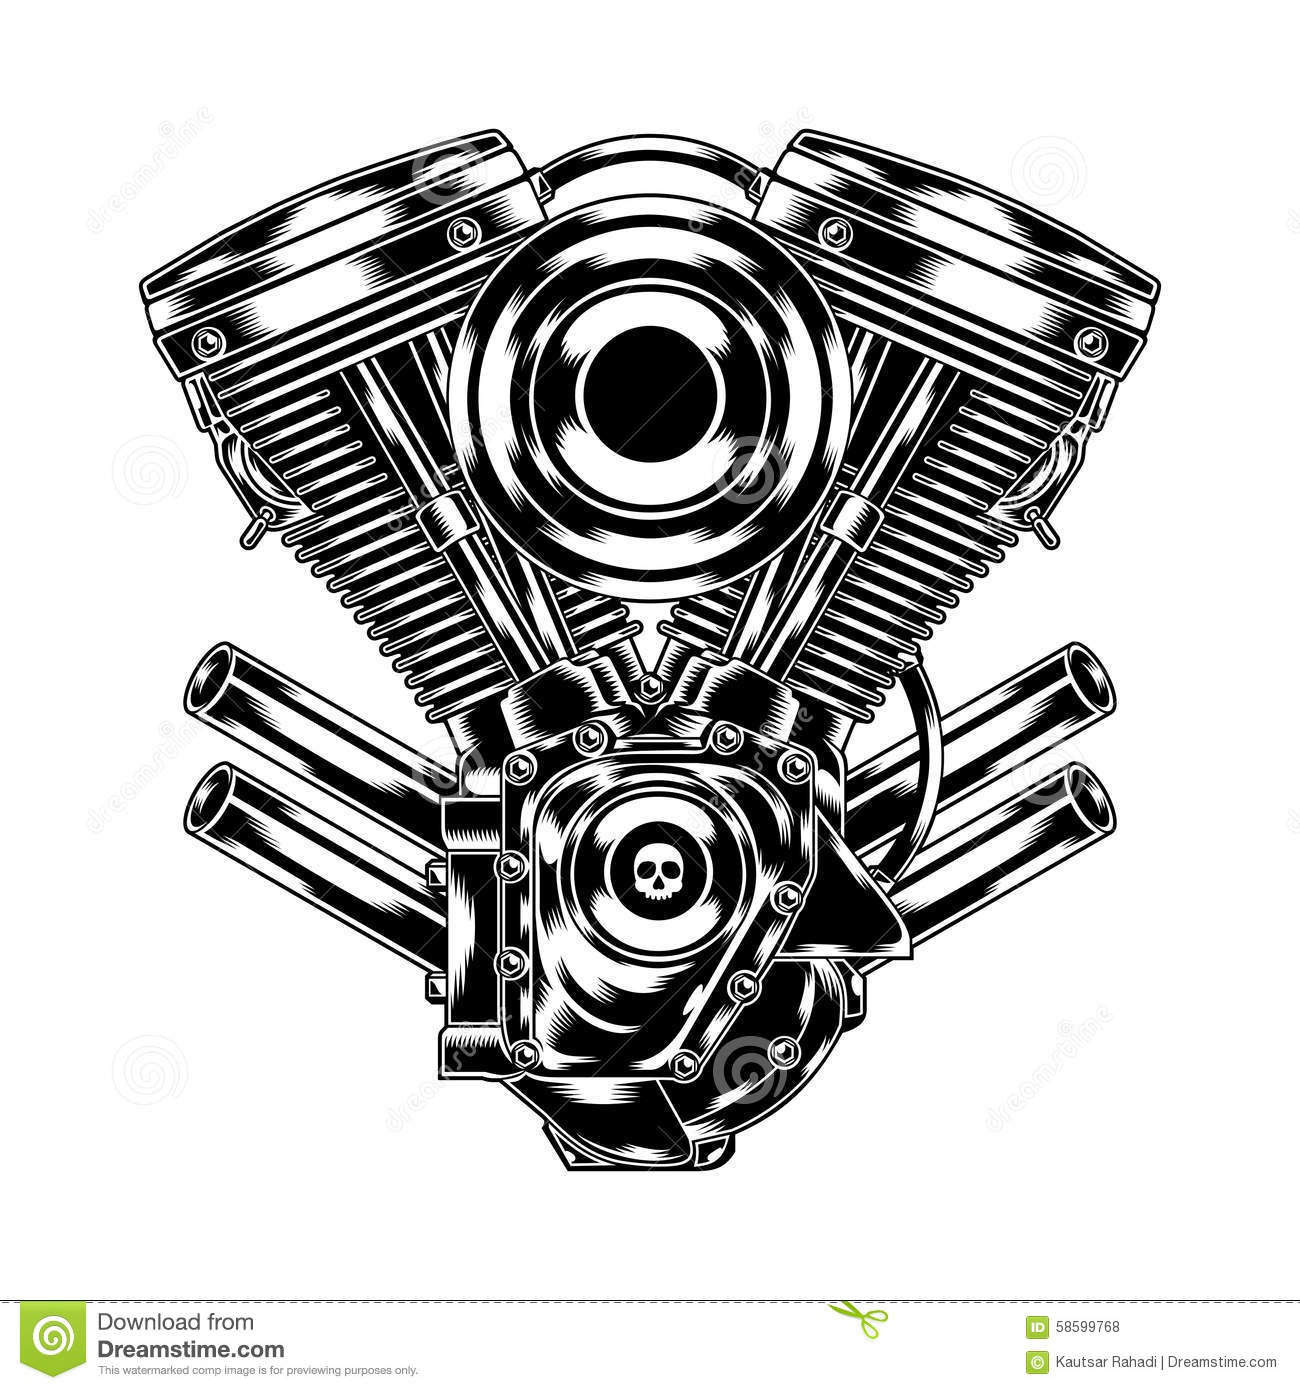 Engine clipart motorbike Engine Clipart Clipart Free Images